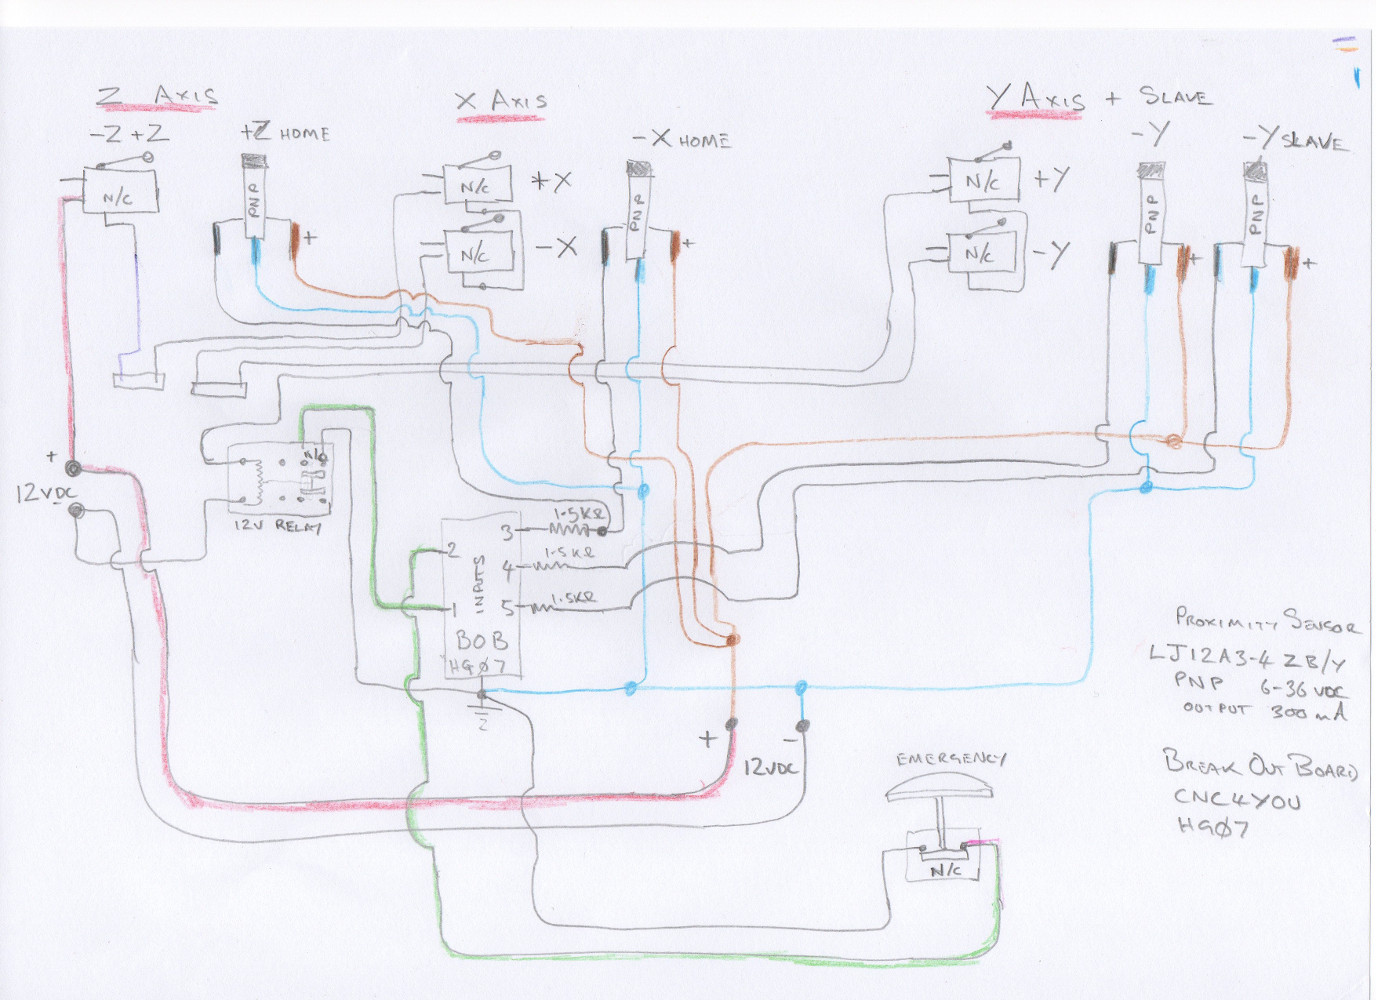 Emergency Stop Nvr Switch Wiring Diagram Solutions Home